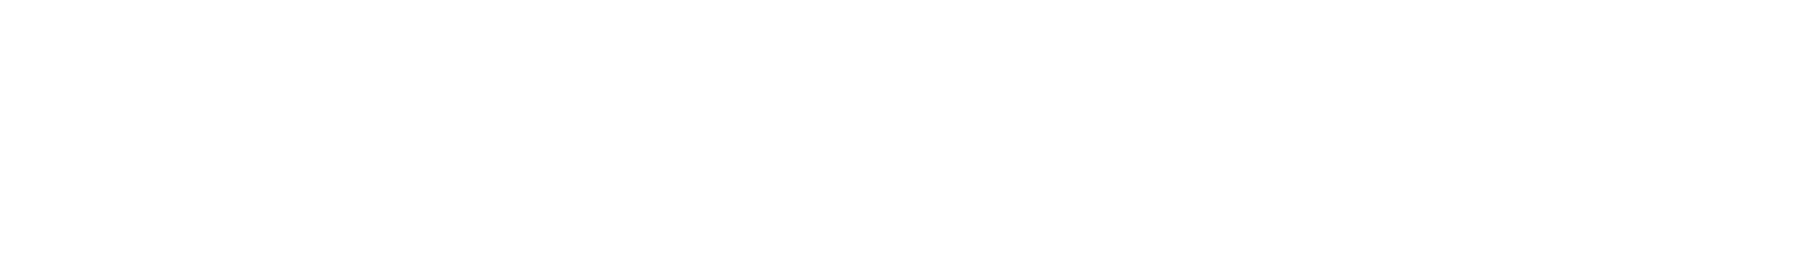 snare 29